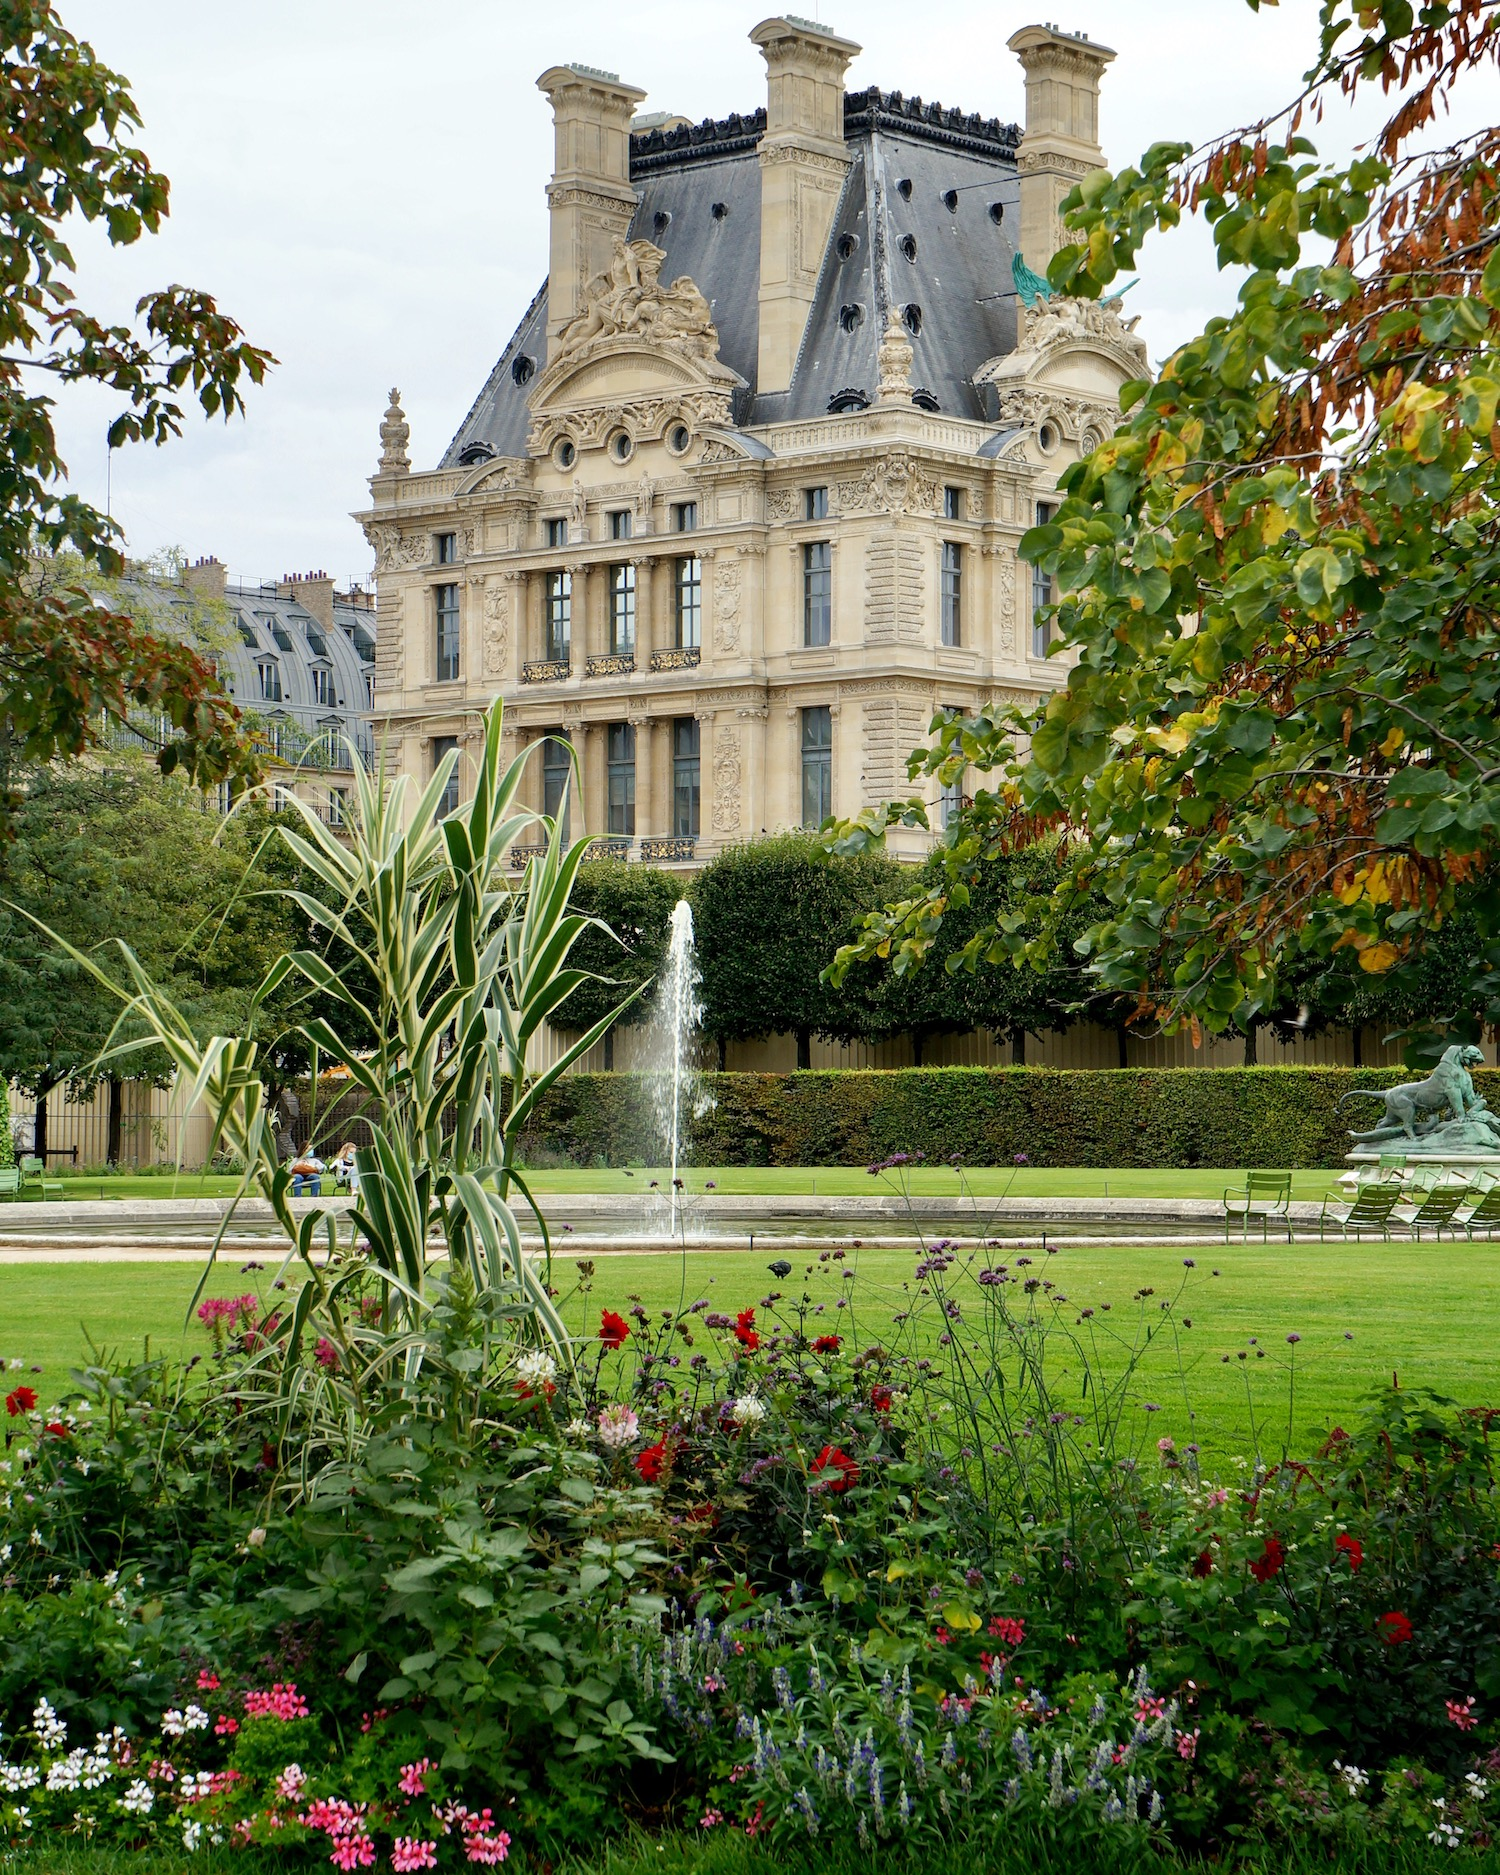 Tuileries red flower beds